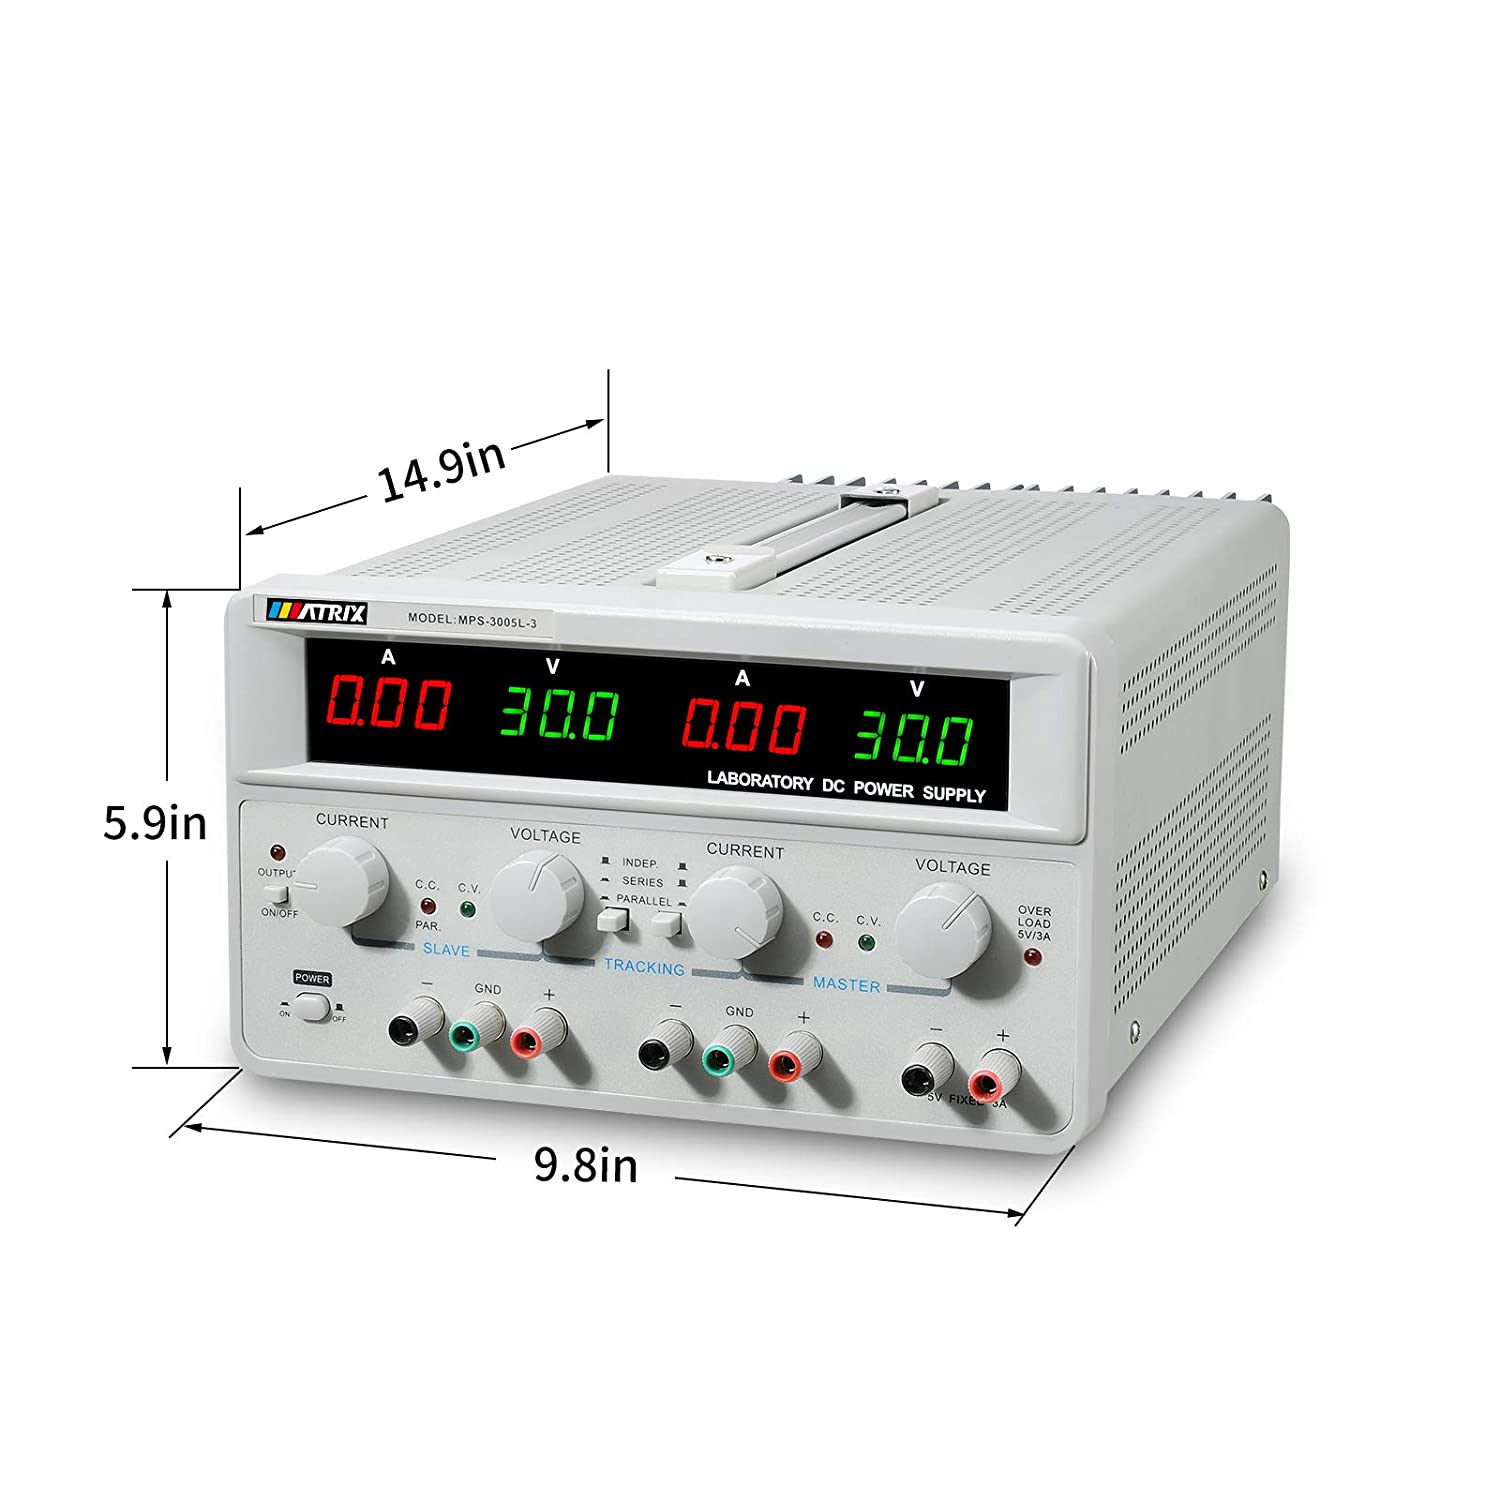 Matrix Triple-Output Adjustable Linear DC Power Supply 30V 5A 3 Digits Display with Series and Parallel Mode OCP US Power Cable MPS-3005L-3